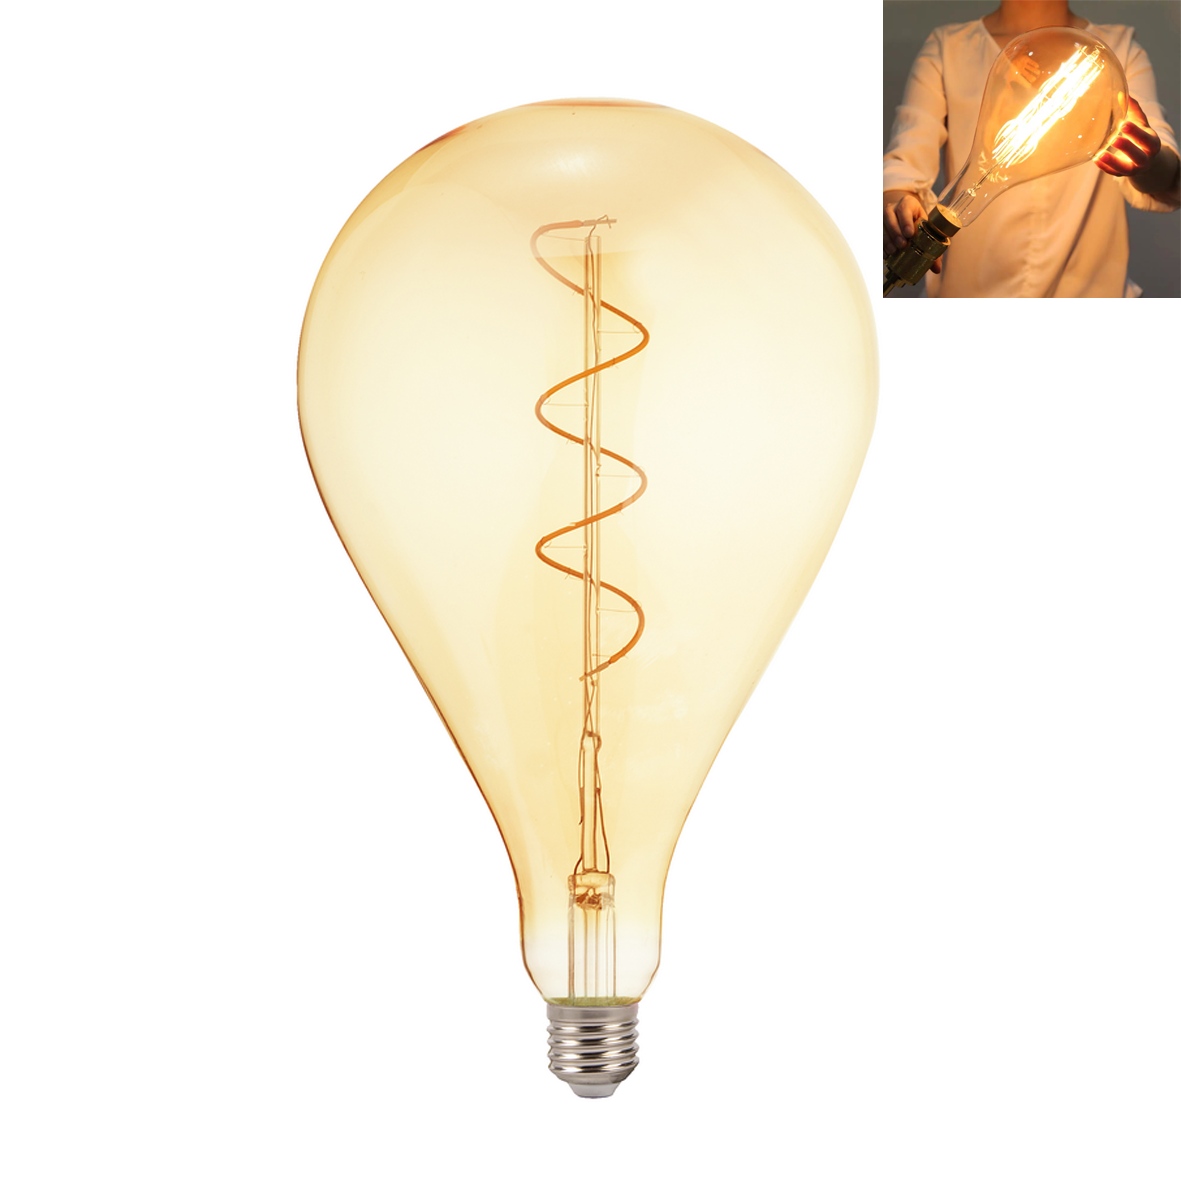 LED lamp 8W big E27 design a hot air Balloon with the filament L94-8W